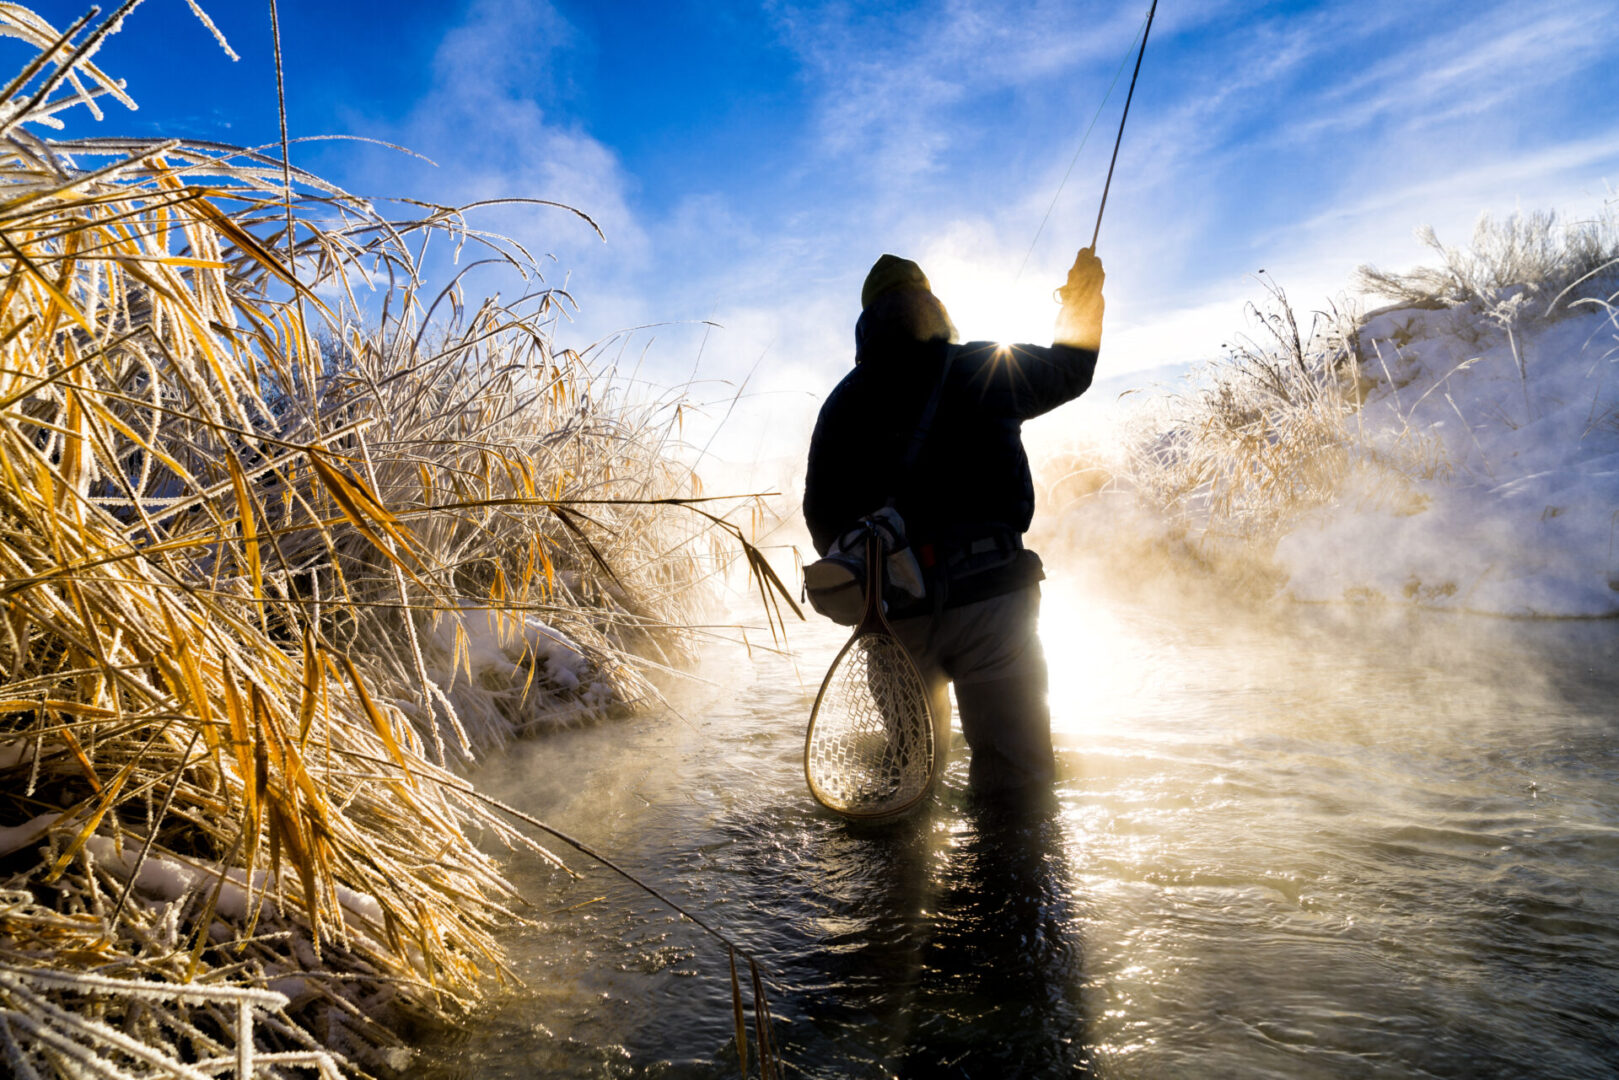 Fly Fishing in Extreme Cold Winter Conditions - Scenic winter landscape with fly fisherman recreating on cold trout mountain stream.  Colorado, USA.